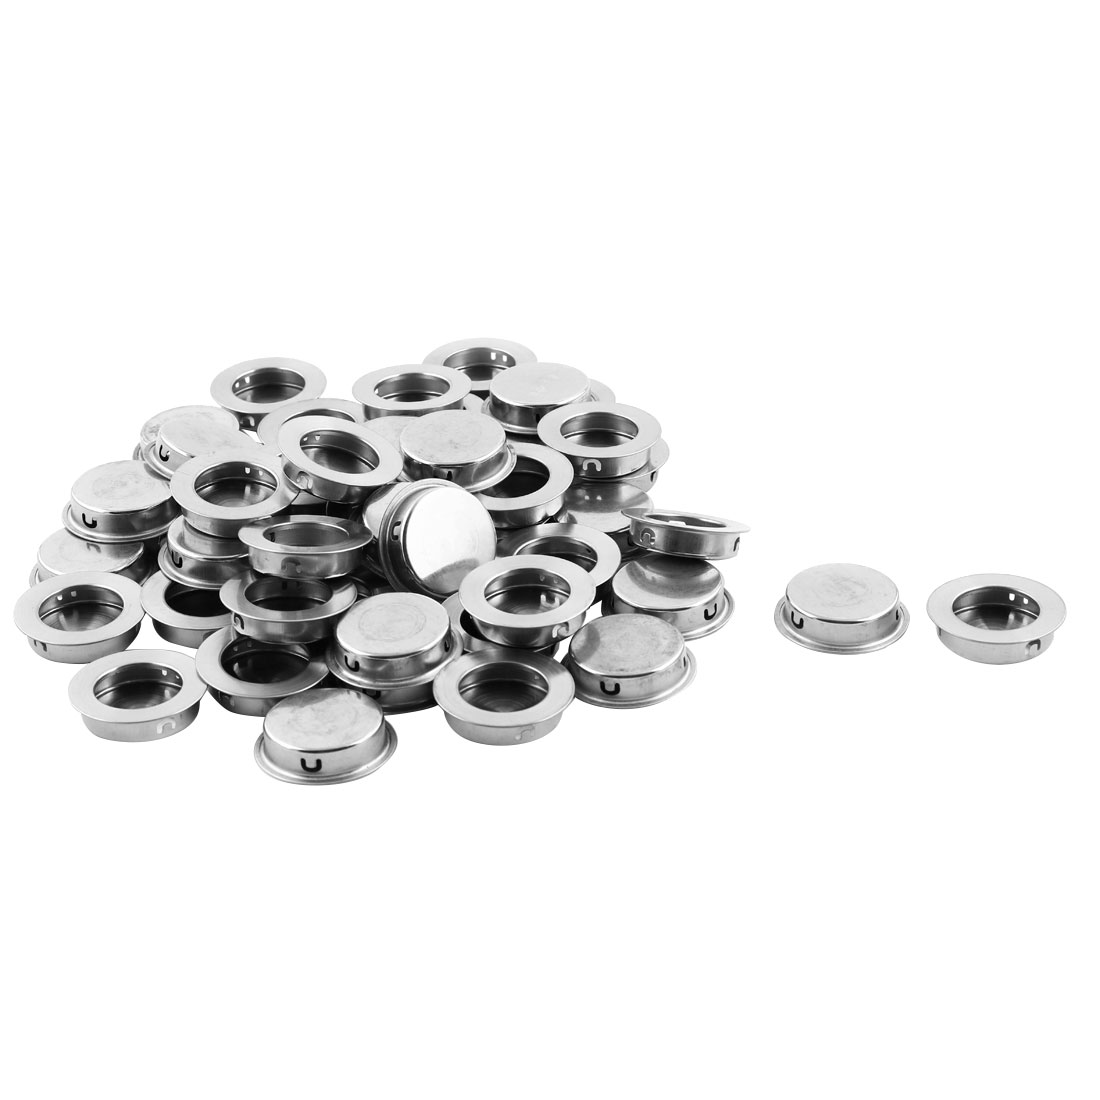 Drawer Closet Stainless Steel Embedded Round Flush Pull Handles 35mm Dia 10 PCS